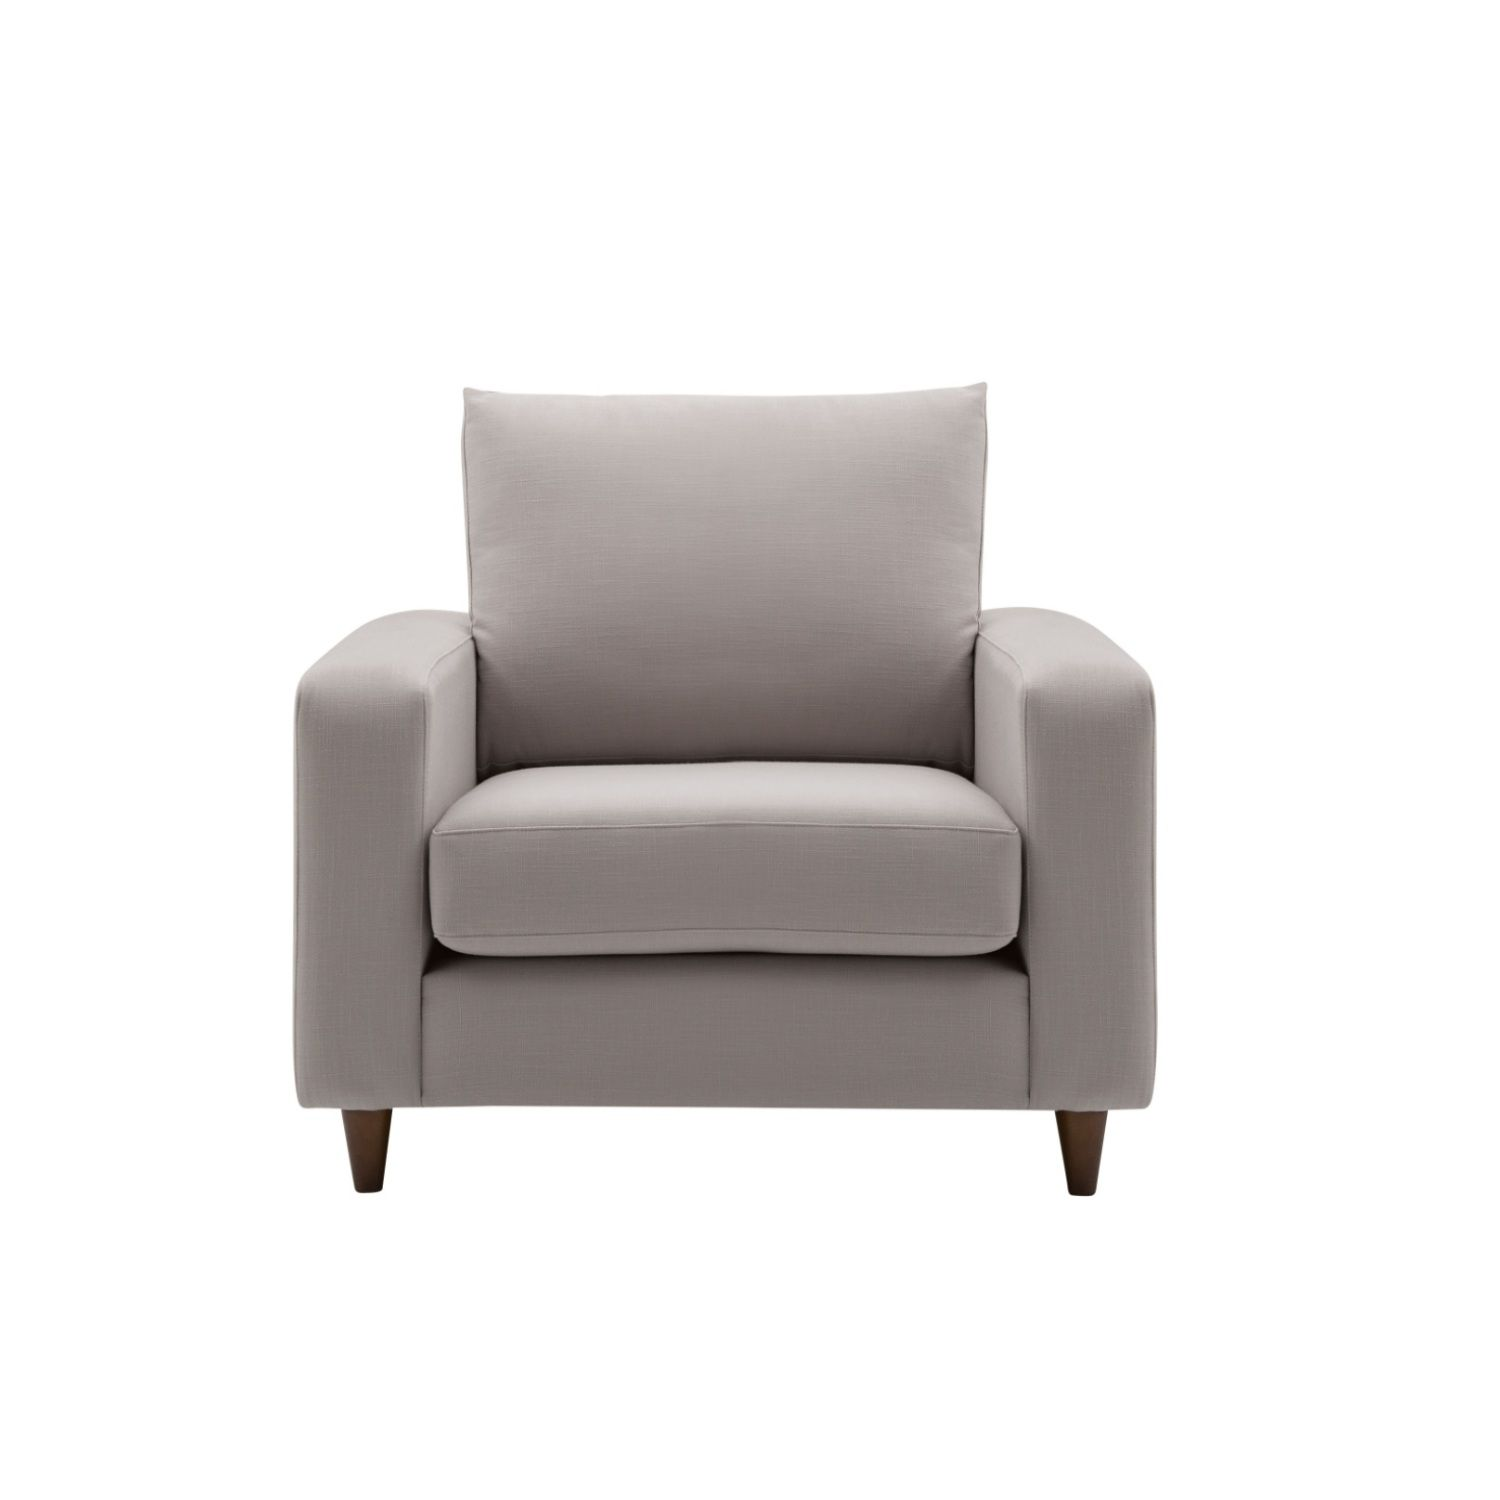 Baxter Armchair from Domayne Online $1000 each | Armchair ...